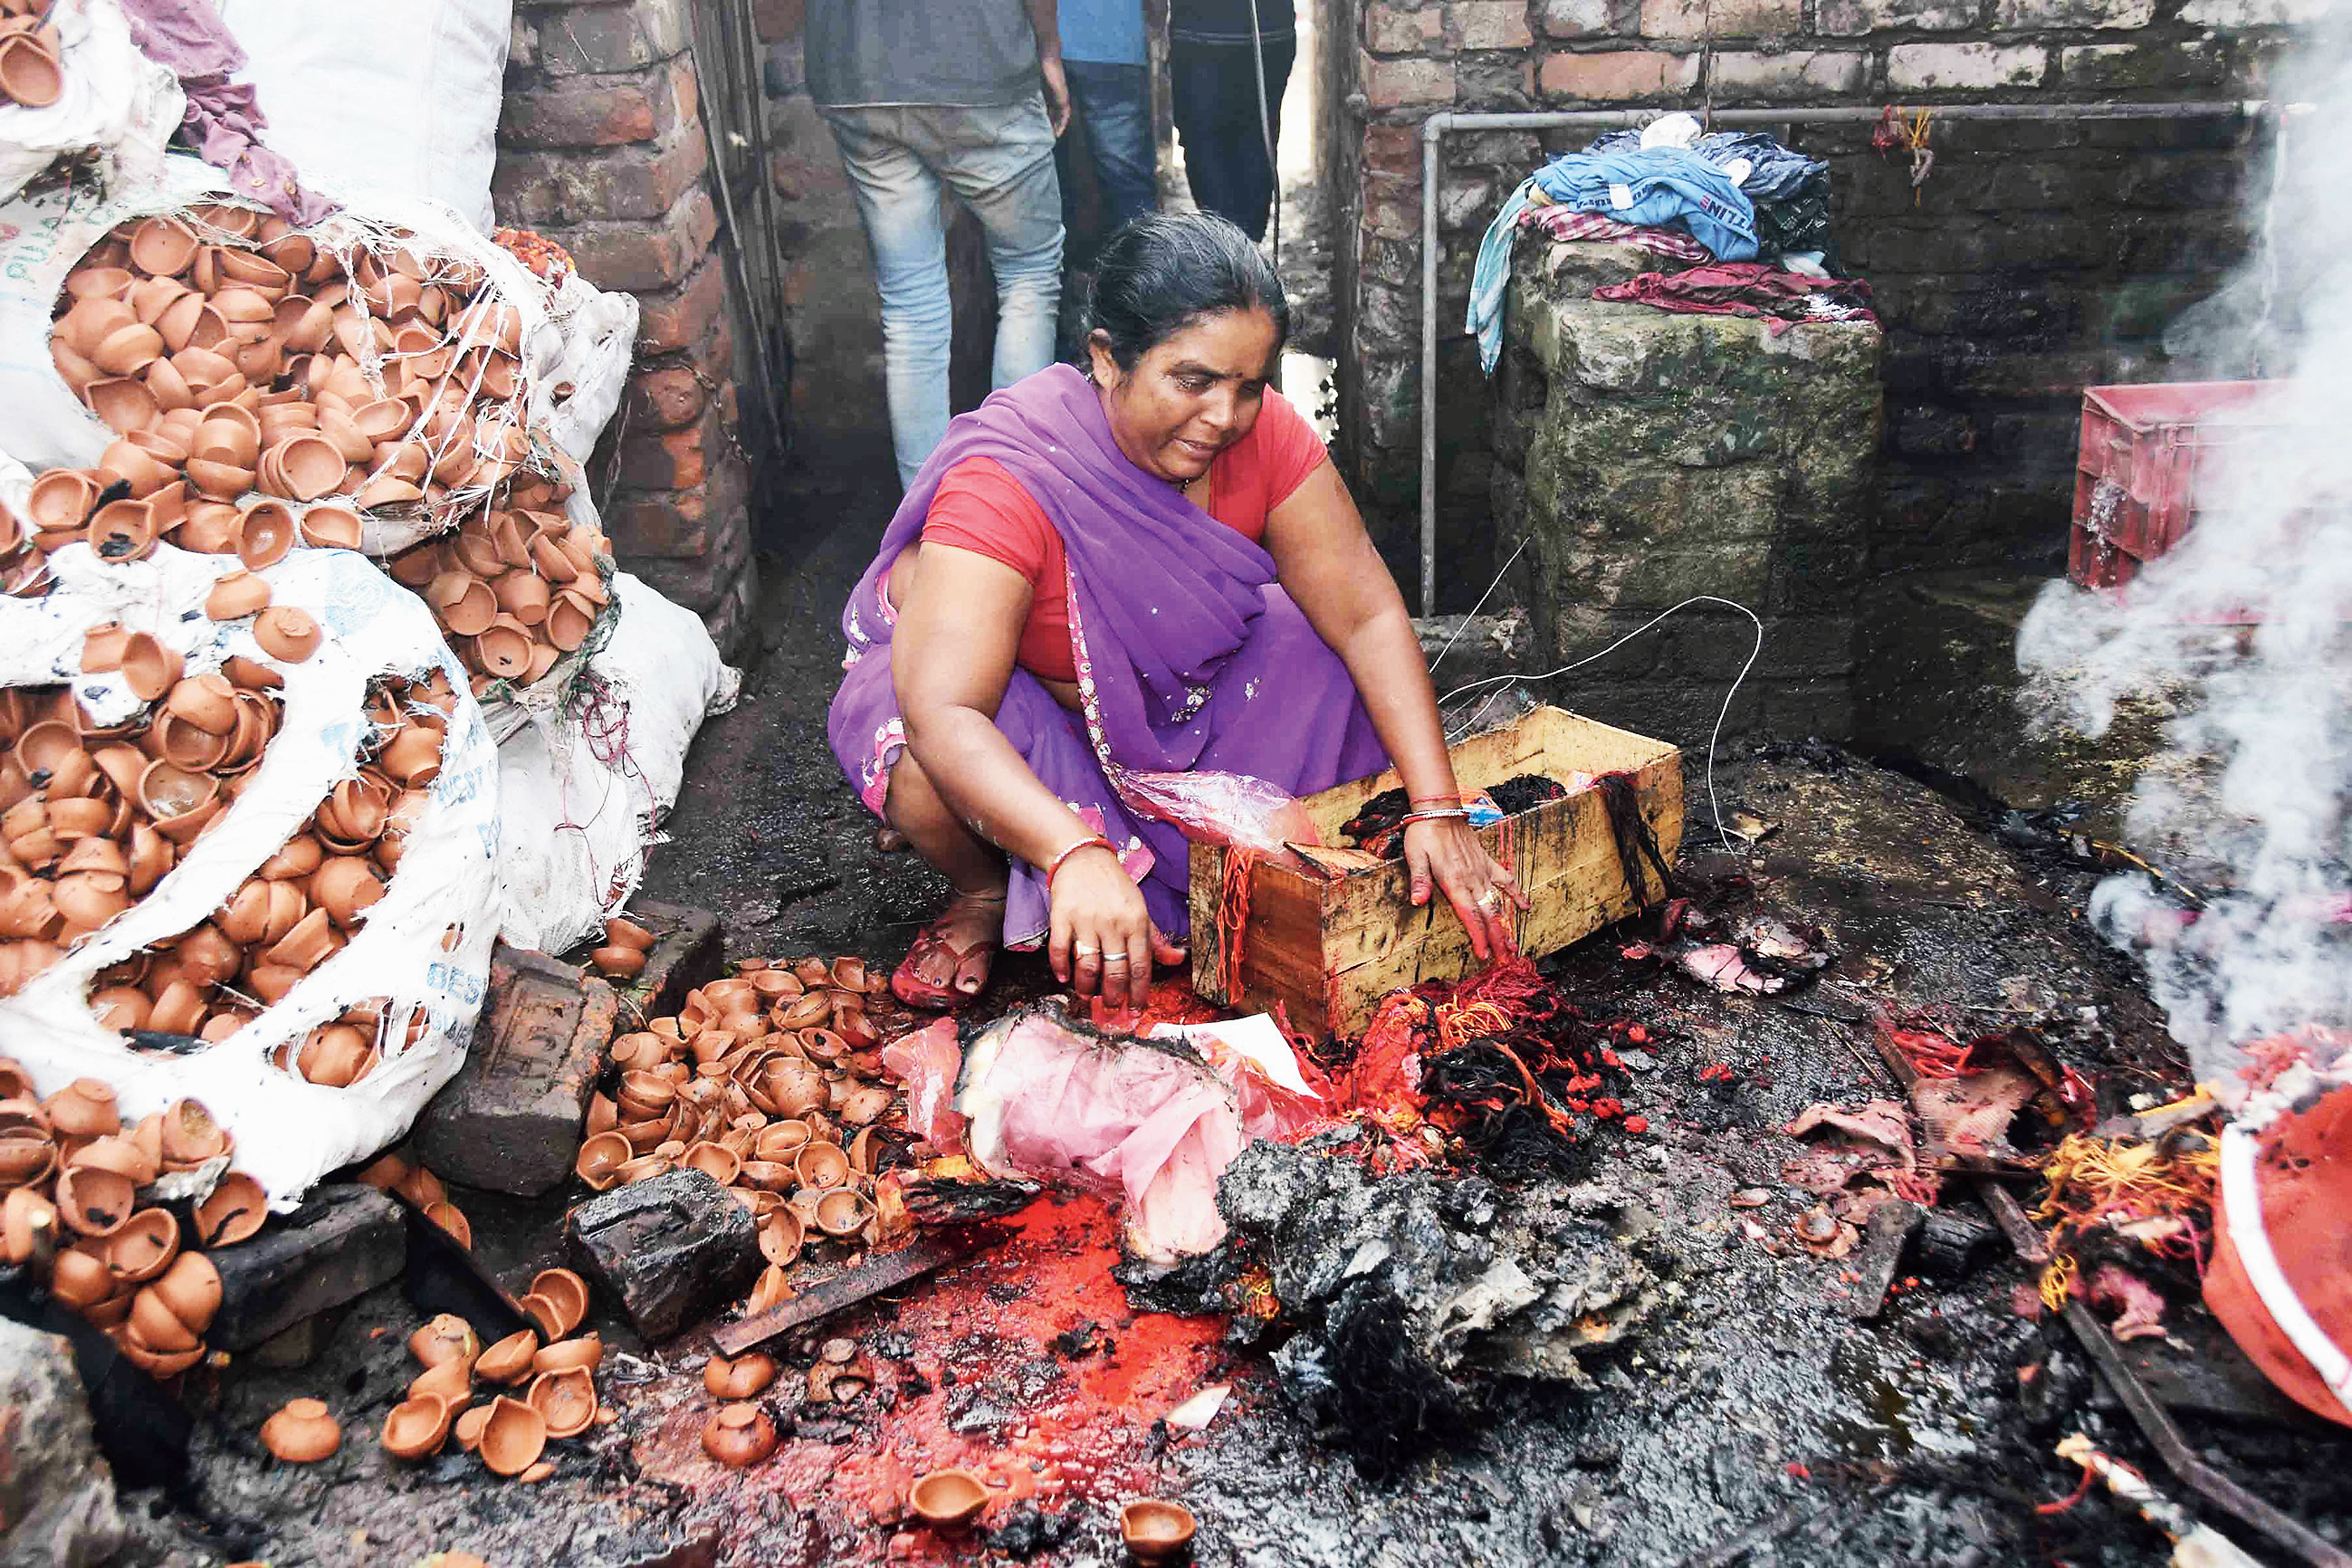 A woman weeps while showing the damaged goods of her shop after a fire near the GPO roundabout in Patna on Sunday.